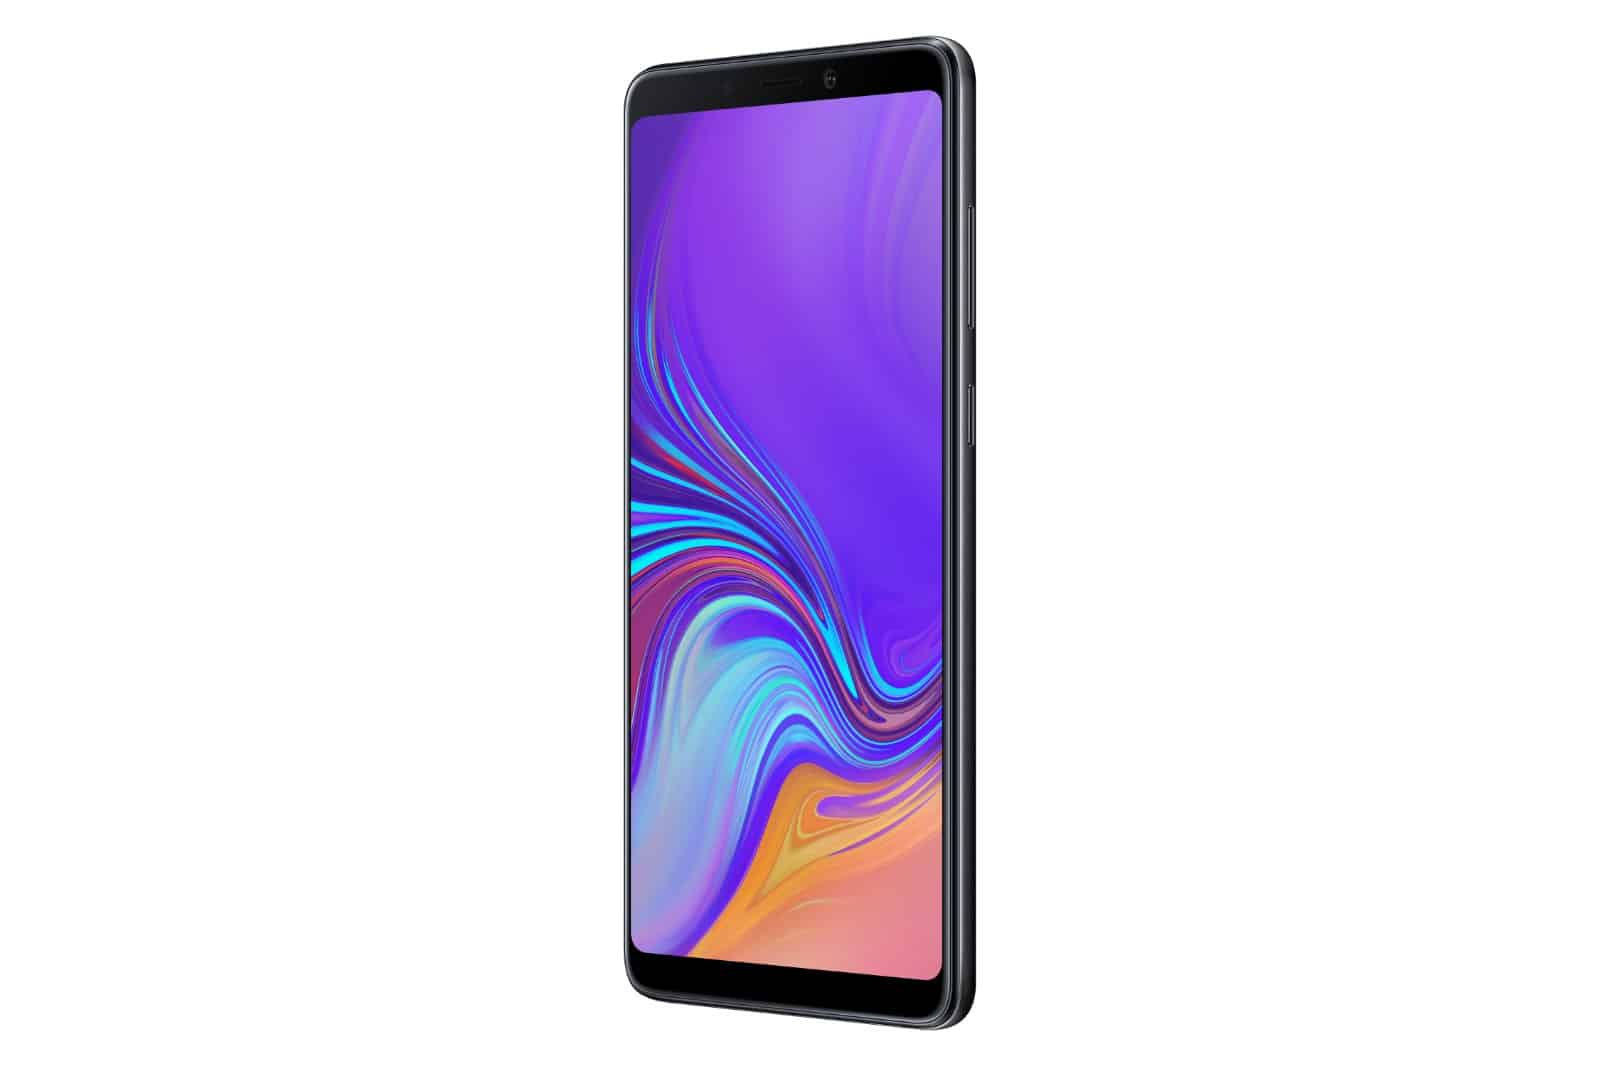 Samsung Intros Galaxy A9 (2018), World's First Quad Camera Smartphone